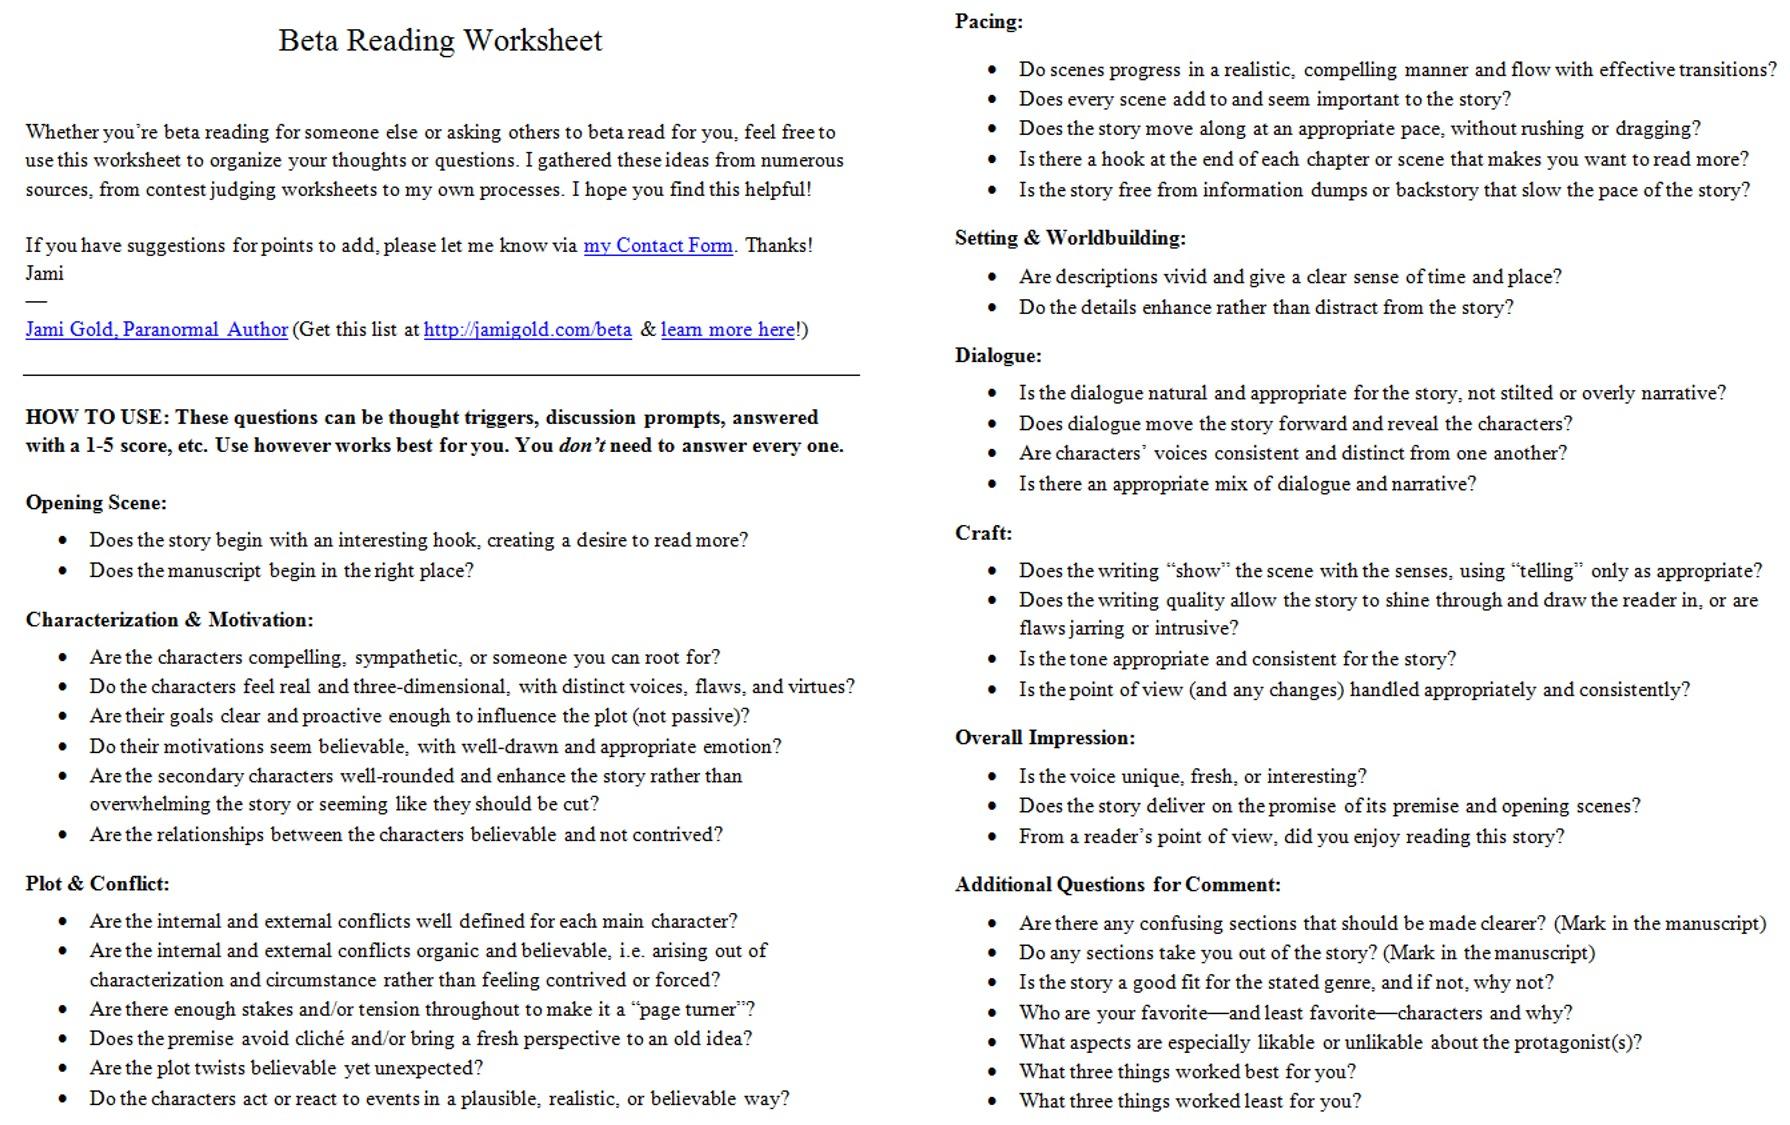 Aldiablosus  Mesmerizing Worksheets For Writers  Jami Gold Paranormal Author With Inspiring Screen Shot Of The Twopage Beta Reading Worksheet With Adorable Expanded Form Worksheets For Nd Grade Also  Digit By  Digit Multiplication Worksheets In Addition Church Worksheets And Basic Punctuation Worksheets As Well As Cell Label Worksheet Additionally Human Environment Interaction Worksheet From Jamigoldcom With Aldiablosus  Inspiring Worksheets For Writers  Jami Gold Paranormal Author With Adorable Screen Shot Of The Twopage Beta Reading Worksheet And Mesmerizing Expanded Form Worksheets For Nd Grade Also  Digit By  Digit Multiplication Worksheets In Addition Church Worksheets From Jamigoldcom